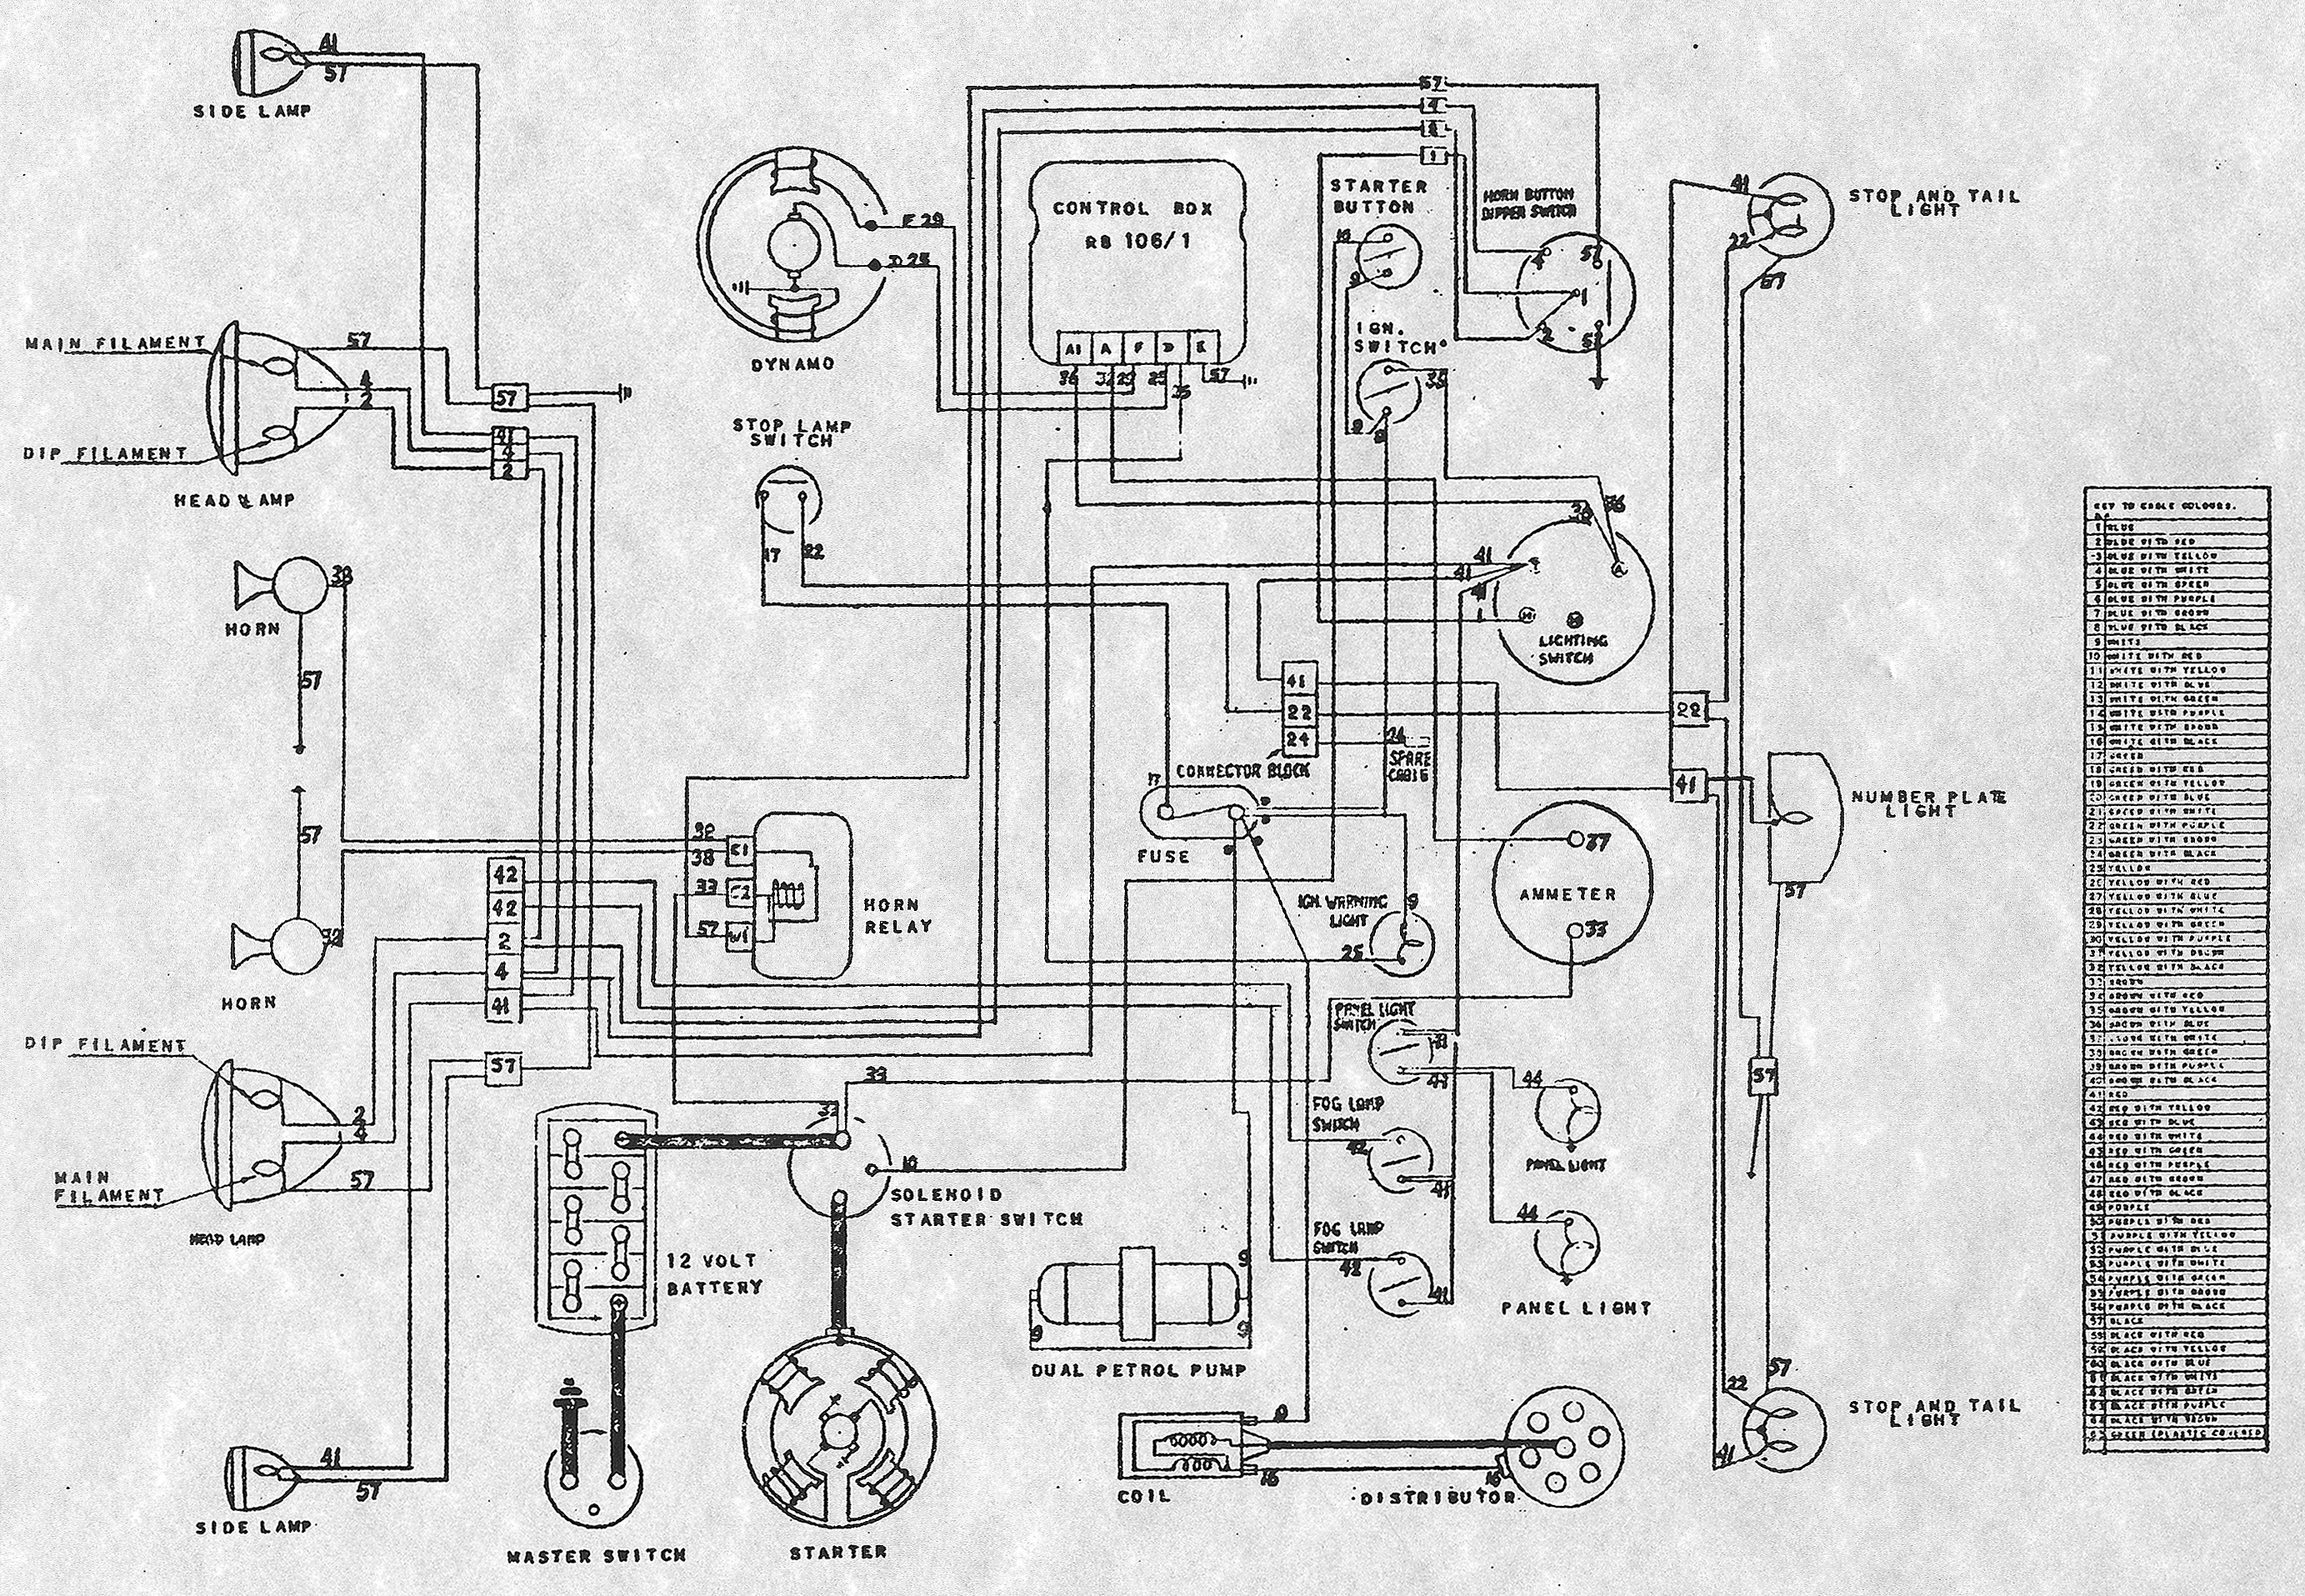 wiring diagram for dolphin gauges the wiring diagram dolphin gauge wiring diagram dolphin car wiring wiring diagram